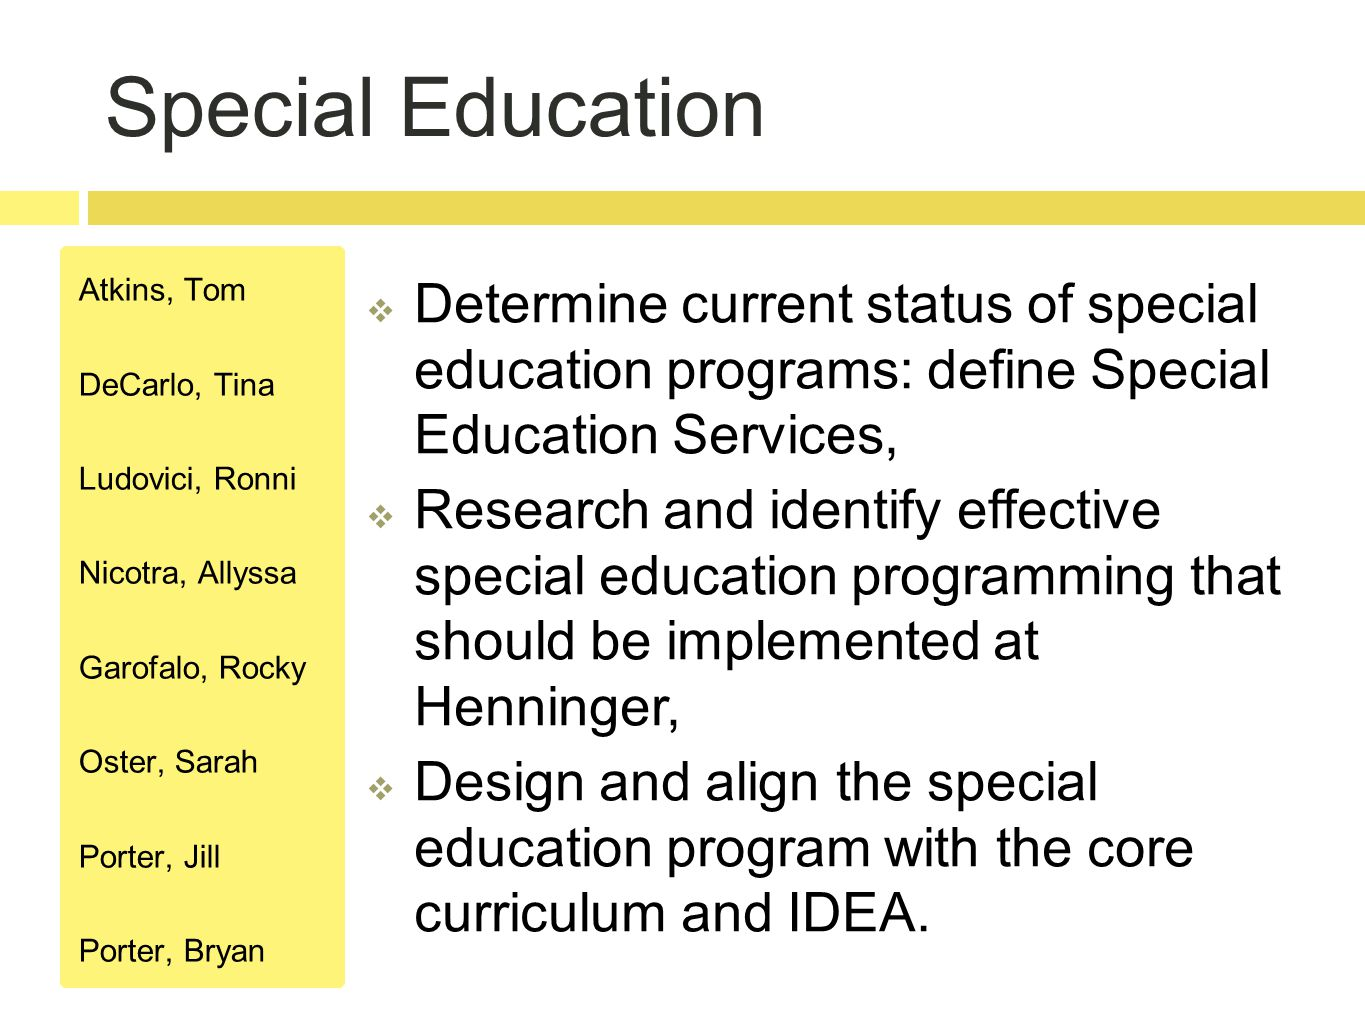 Special Education Atkins, Tom DeCarlo, Tina Ludovici, Ronni Nicotra, Allyssa Garofalo, Rocky Oster, Sarah Porter, Jill Porter, Bryan  Determine current status of special education programs: define Special Education Services,  Research and identify effective special education programming that should be implemented at Henninger,  Design and align the special education program with the core curriculum and IDEA.